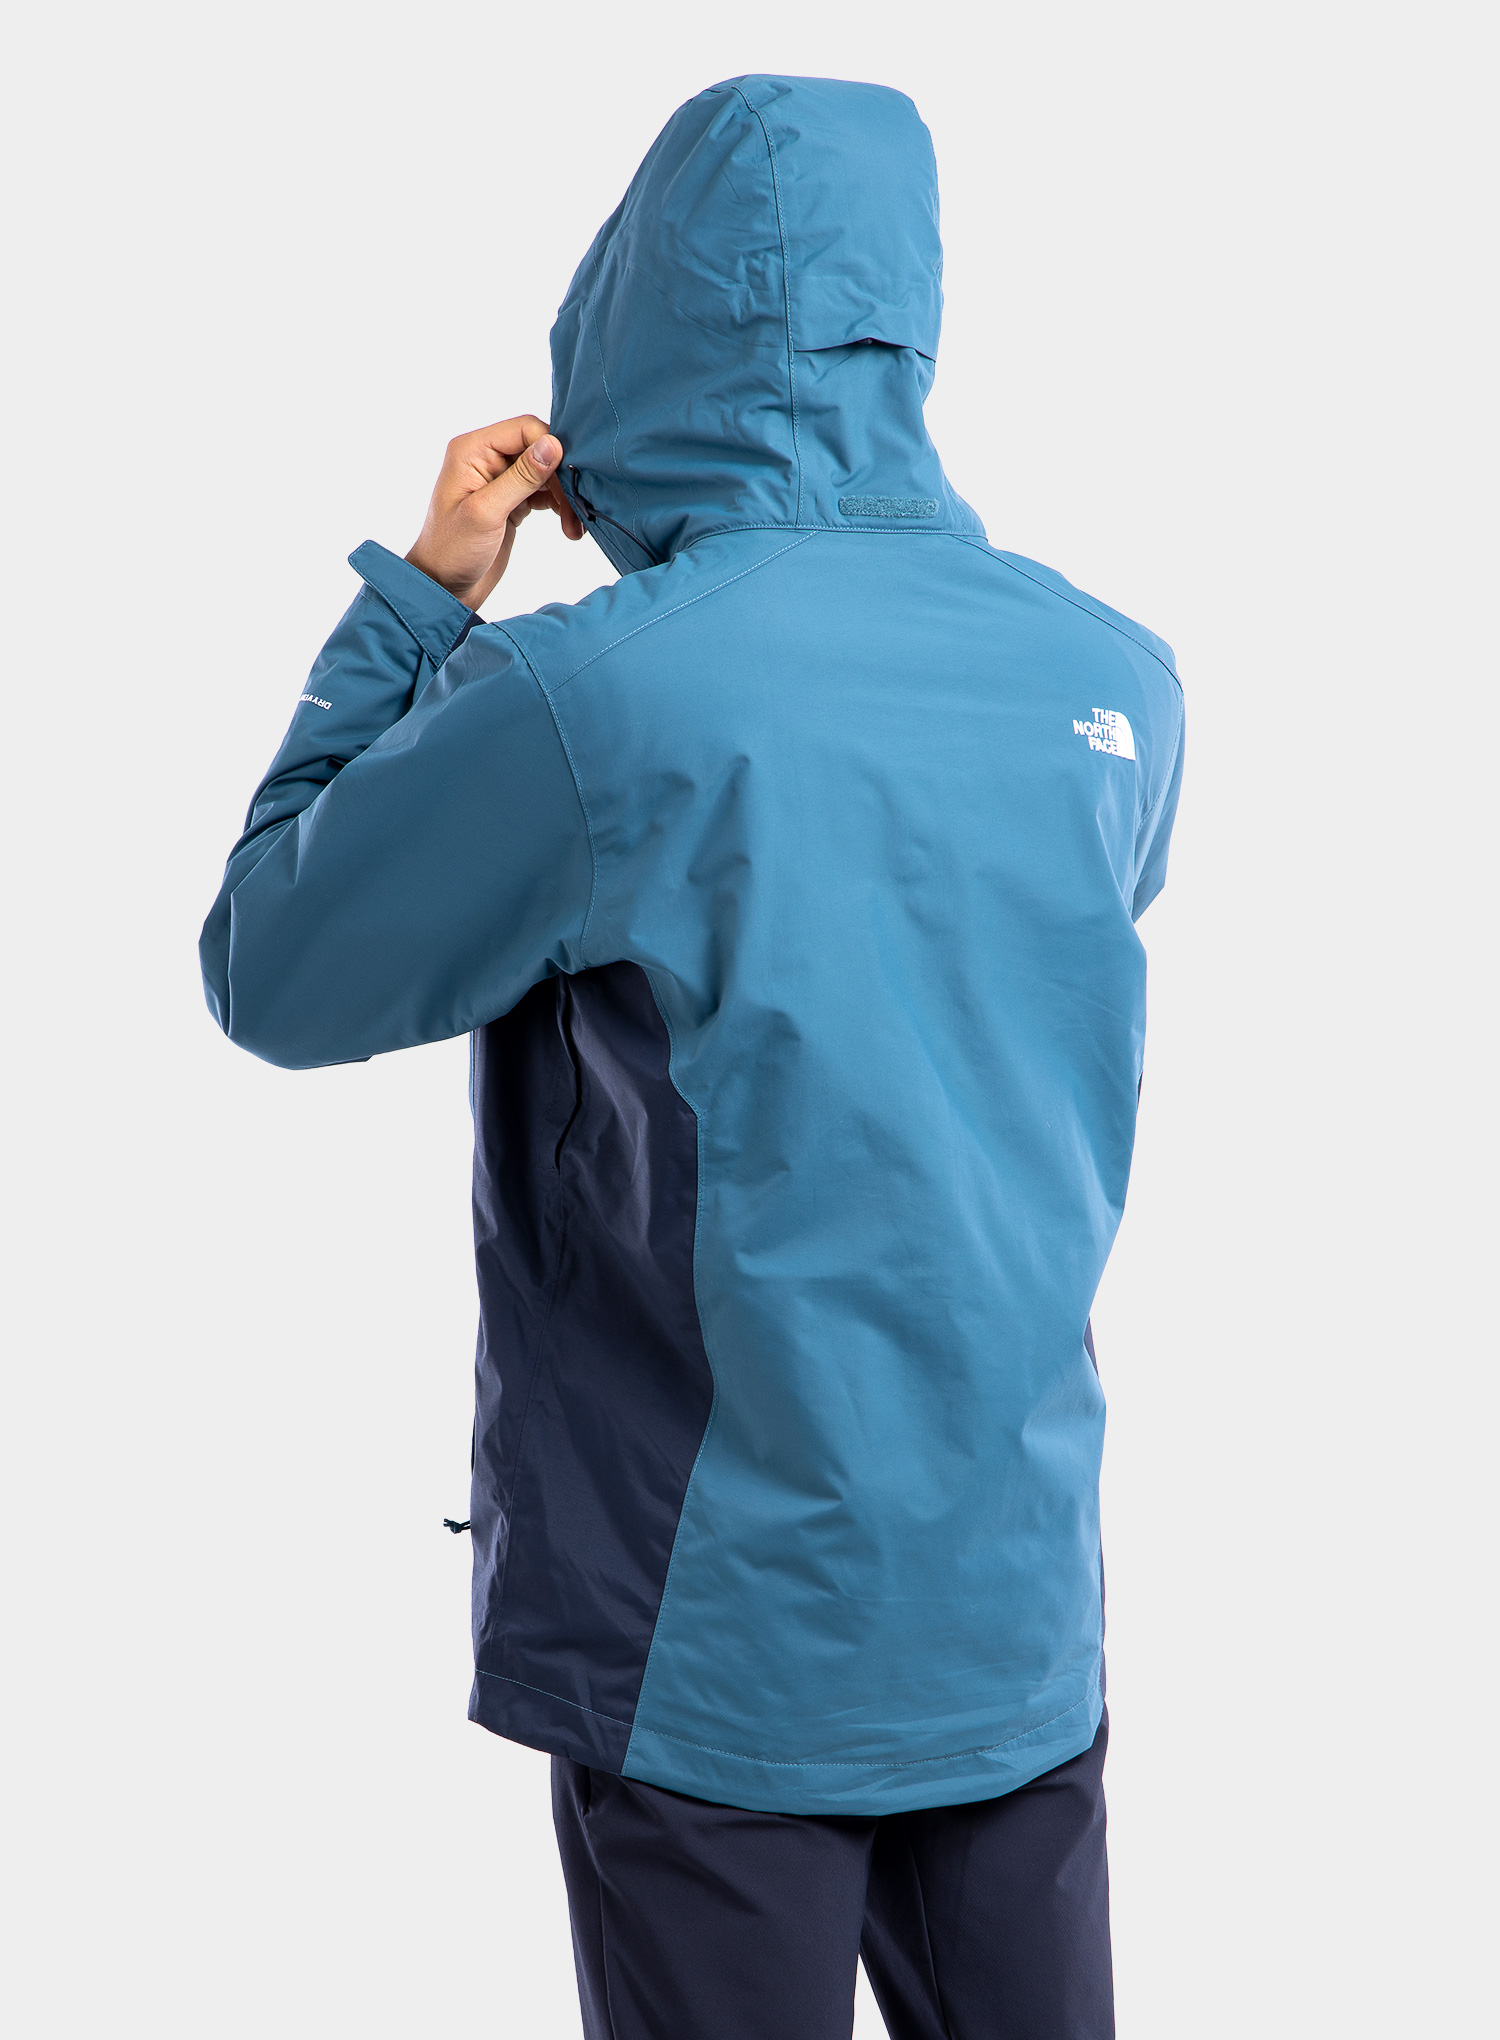 Kurtka The North Face Evolution II Triclimate - blue/navy - zdjęcie nr. 8